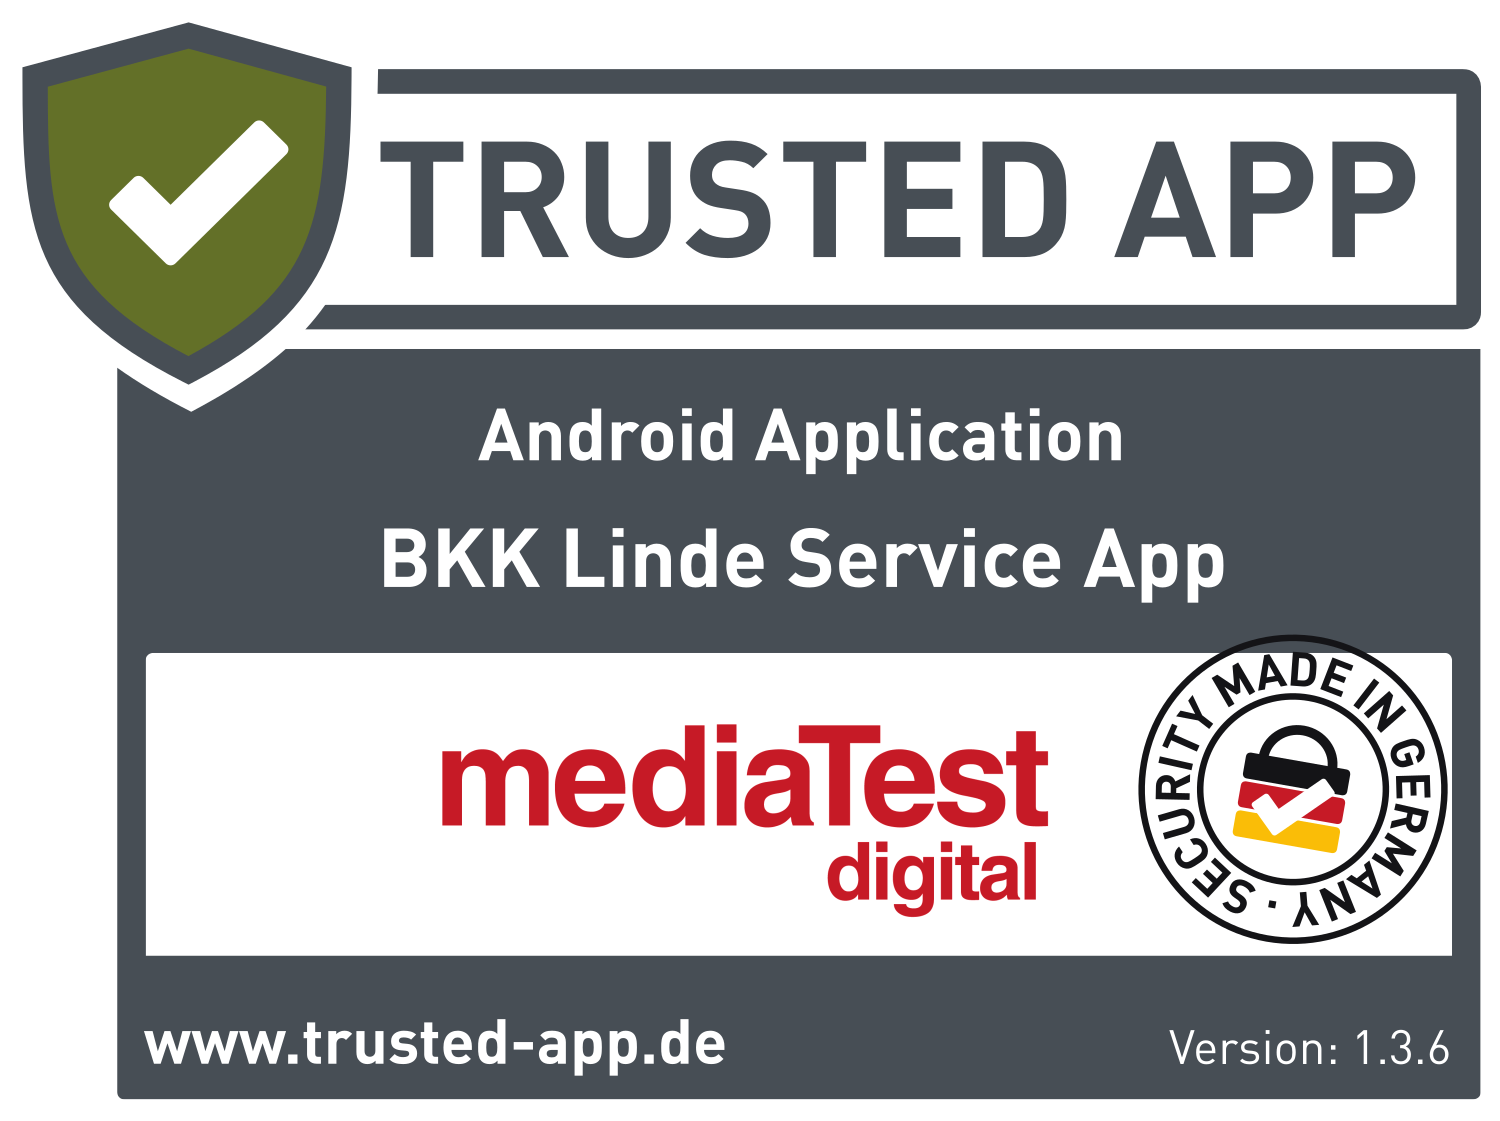 BKK Linde Service App Android